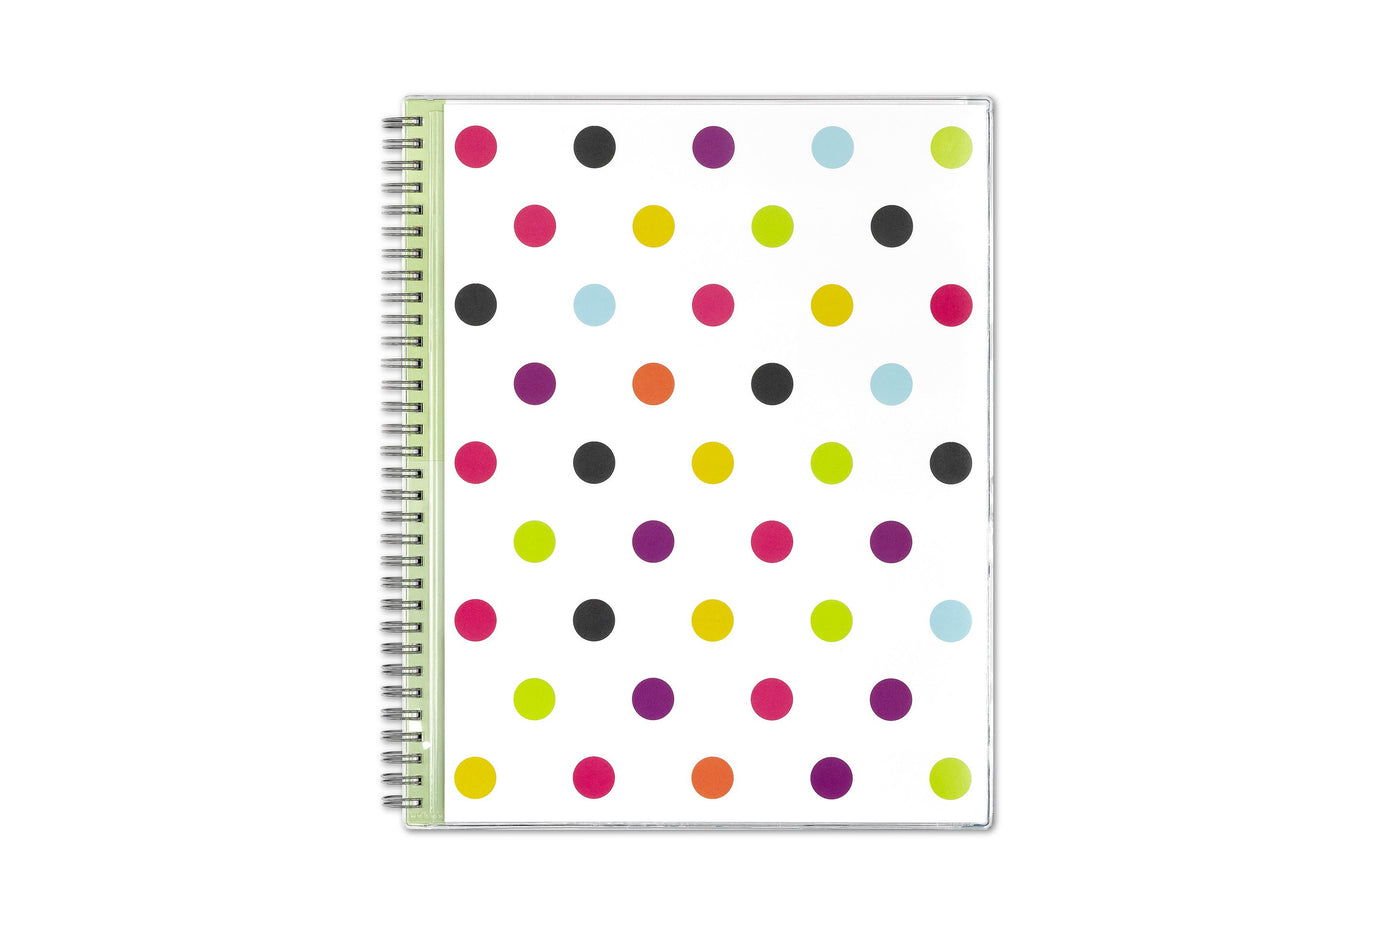 teacher planner for 2020-2021 in 8.5x11 page size with a white back ground and multi-colored polka dot front cover